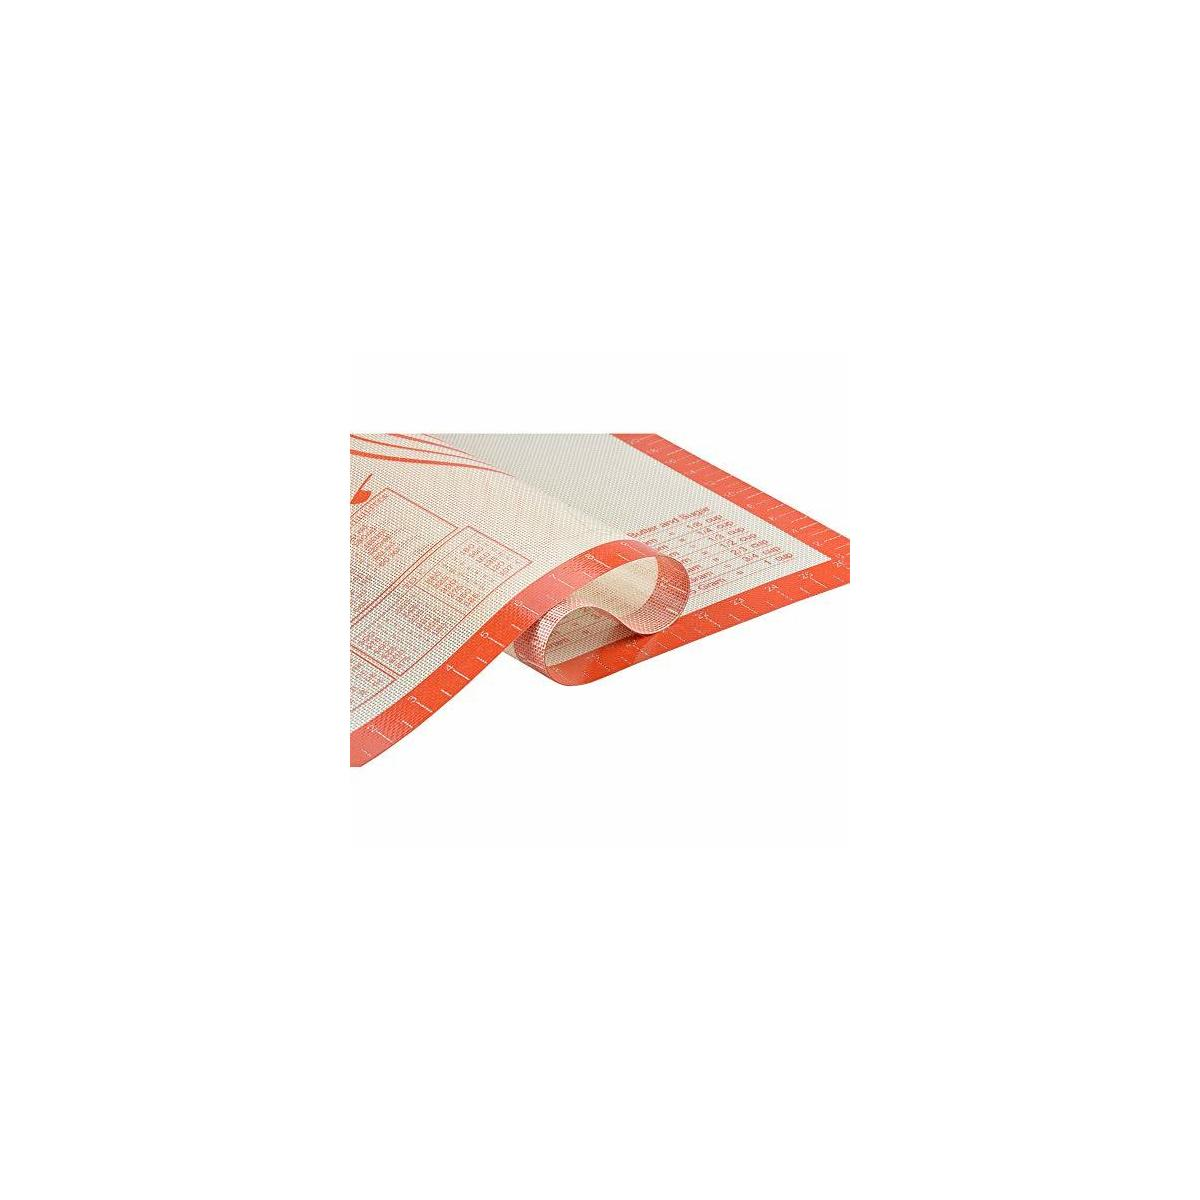 Pastry Mat for Rolling Dough Non Slip - Non-stick Silicone Baking Mat XLarge - Pastry Sheet for Rolling Out Dough - Dough Mat for Bread Pie Crust/Cookie Rolling Fondant Mat 28